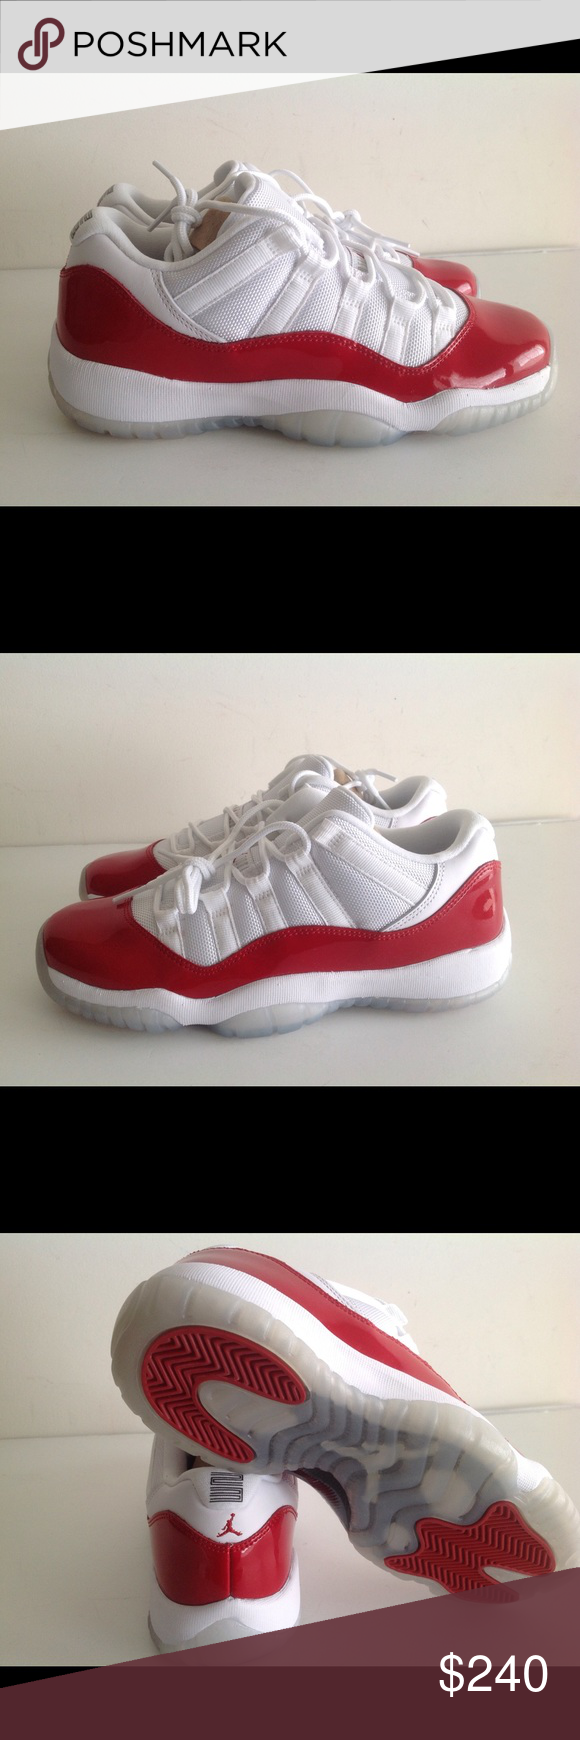 Air Jordan 11 Retro Low white cherry Brand new with original box size 6.5y  women size 8 Nike Shoes Sneakers 8f29c63450